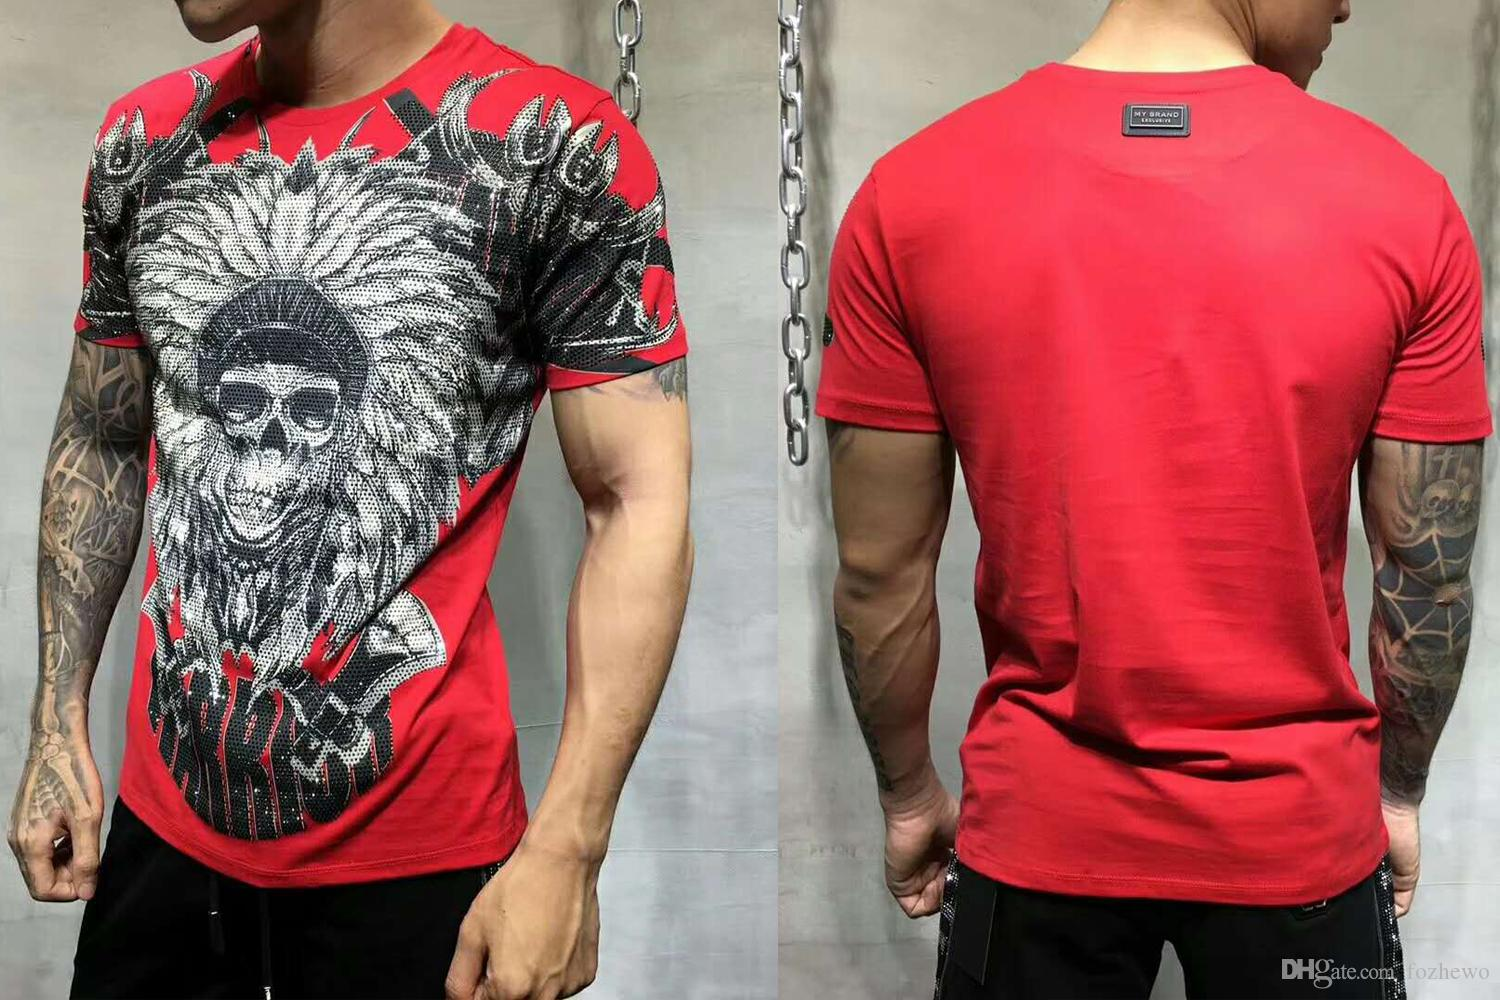 c5fb2ec382b Men T SHIRT ROUND NECK SS MONOPOLI Cotton Jersey T Shirt By The Street  Artist Alec Monopoly Enriched By Colored Crystals Tshirt Online T Shirt Buy  Joke T ...